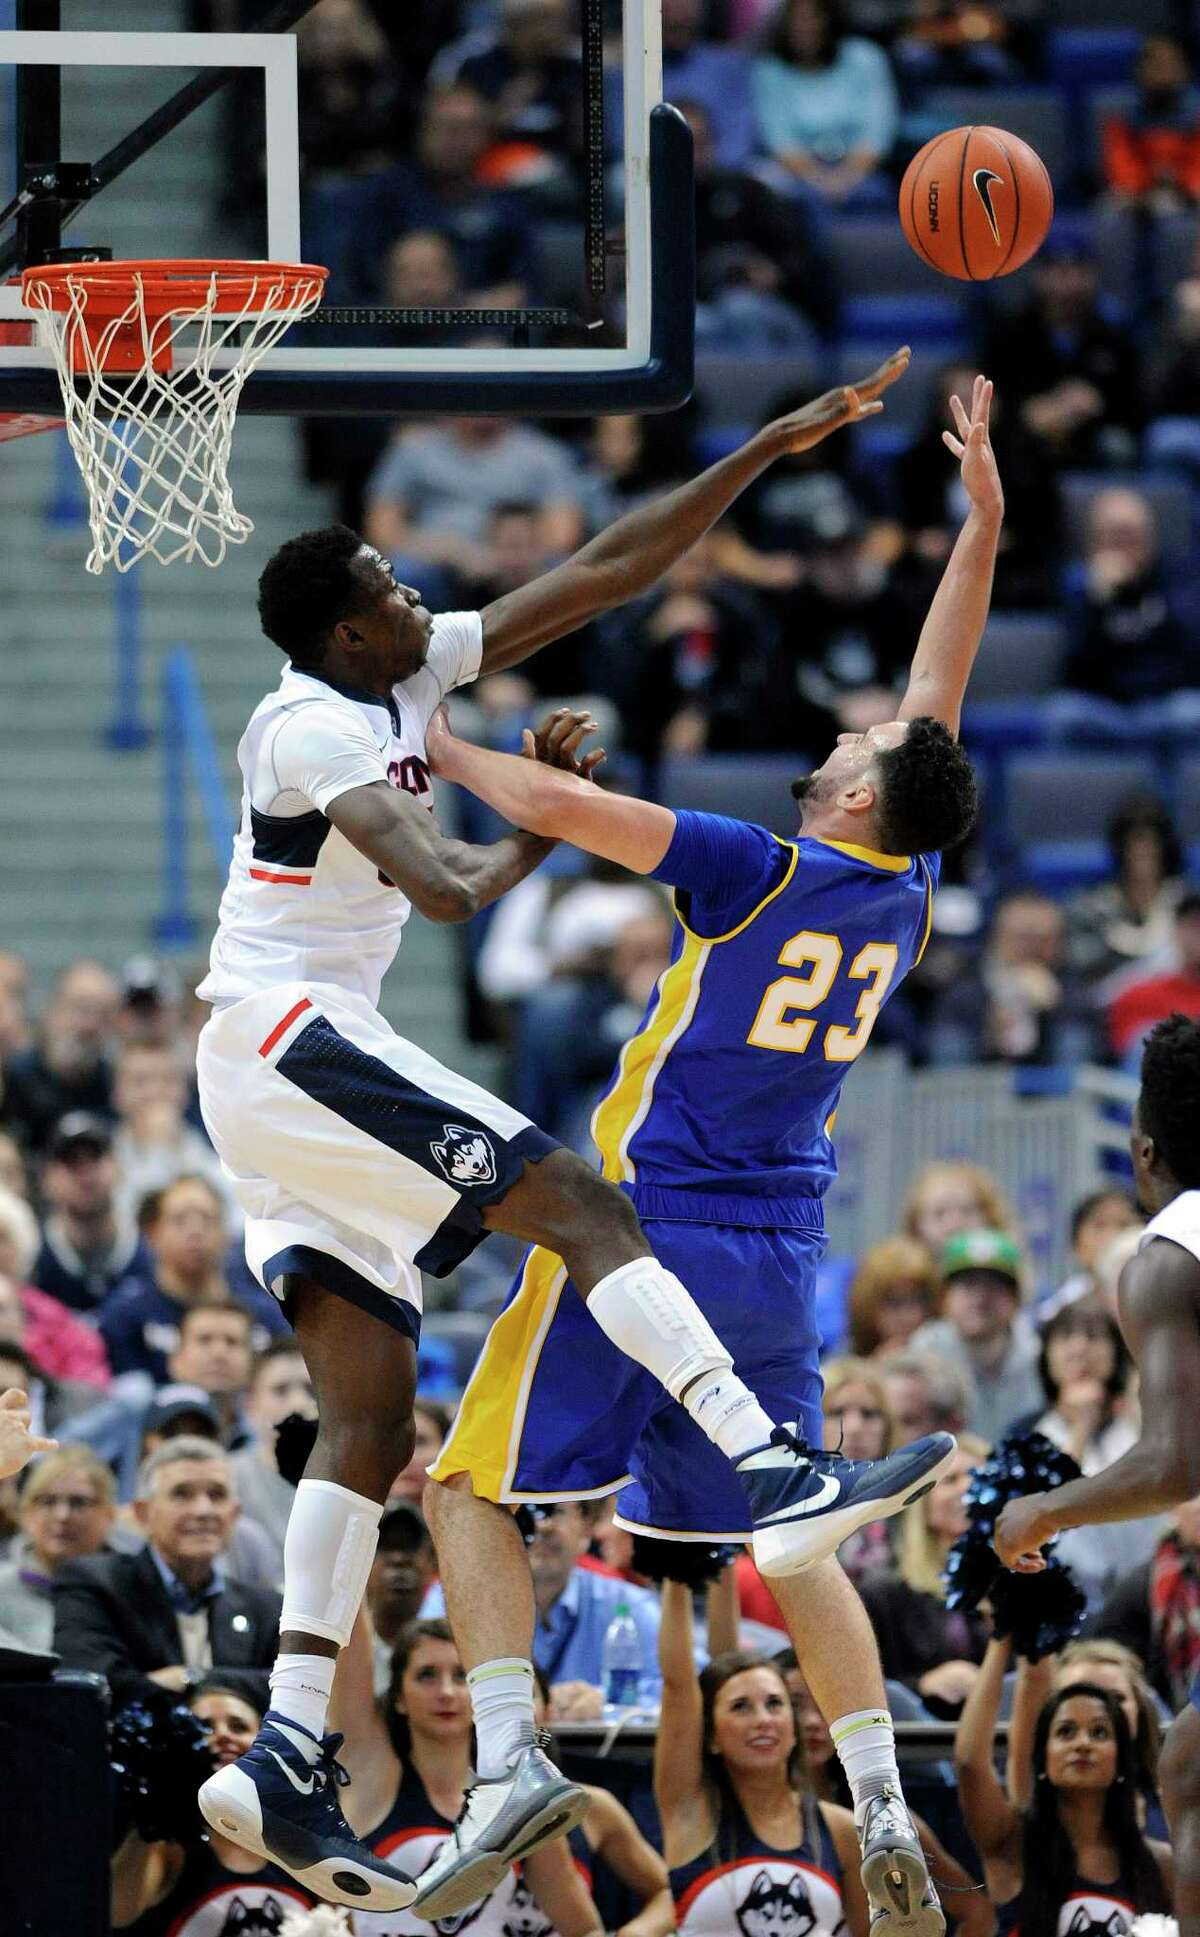 Connecticut's Amida Brimah (35) blocks the shot of New Haven's Joshua Guddemi (23) during the first half of an NCAA college basketball exhibition game in Hartford, Conn., on Saturday, Nov. 7, 2015. (AP Photo/Fred Beckham)